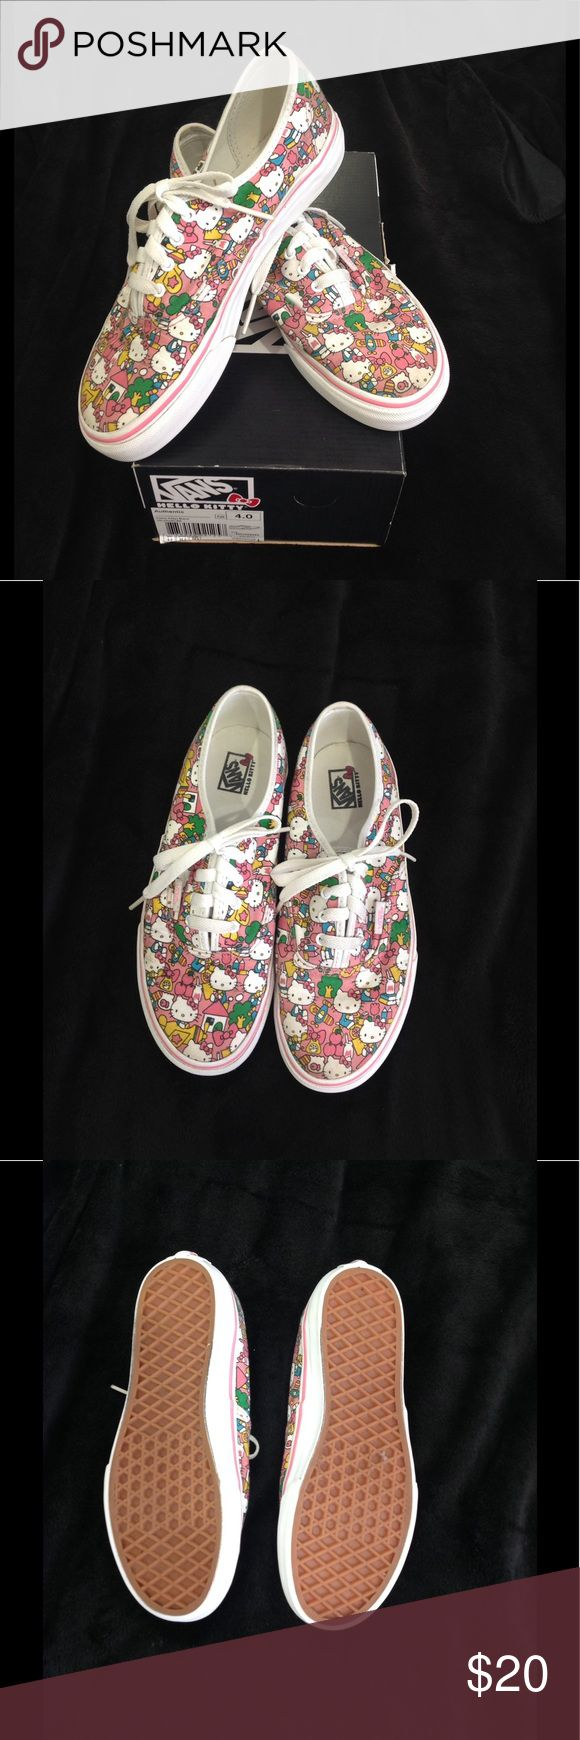 Authentic Hello Kitty Vans These super cute Hello Kitty Vans come in excellent pre-owned condition. Worn just a handful of times. Come with original box. Vans Shoes Sneakers